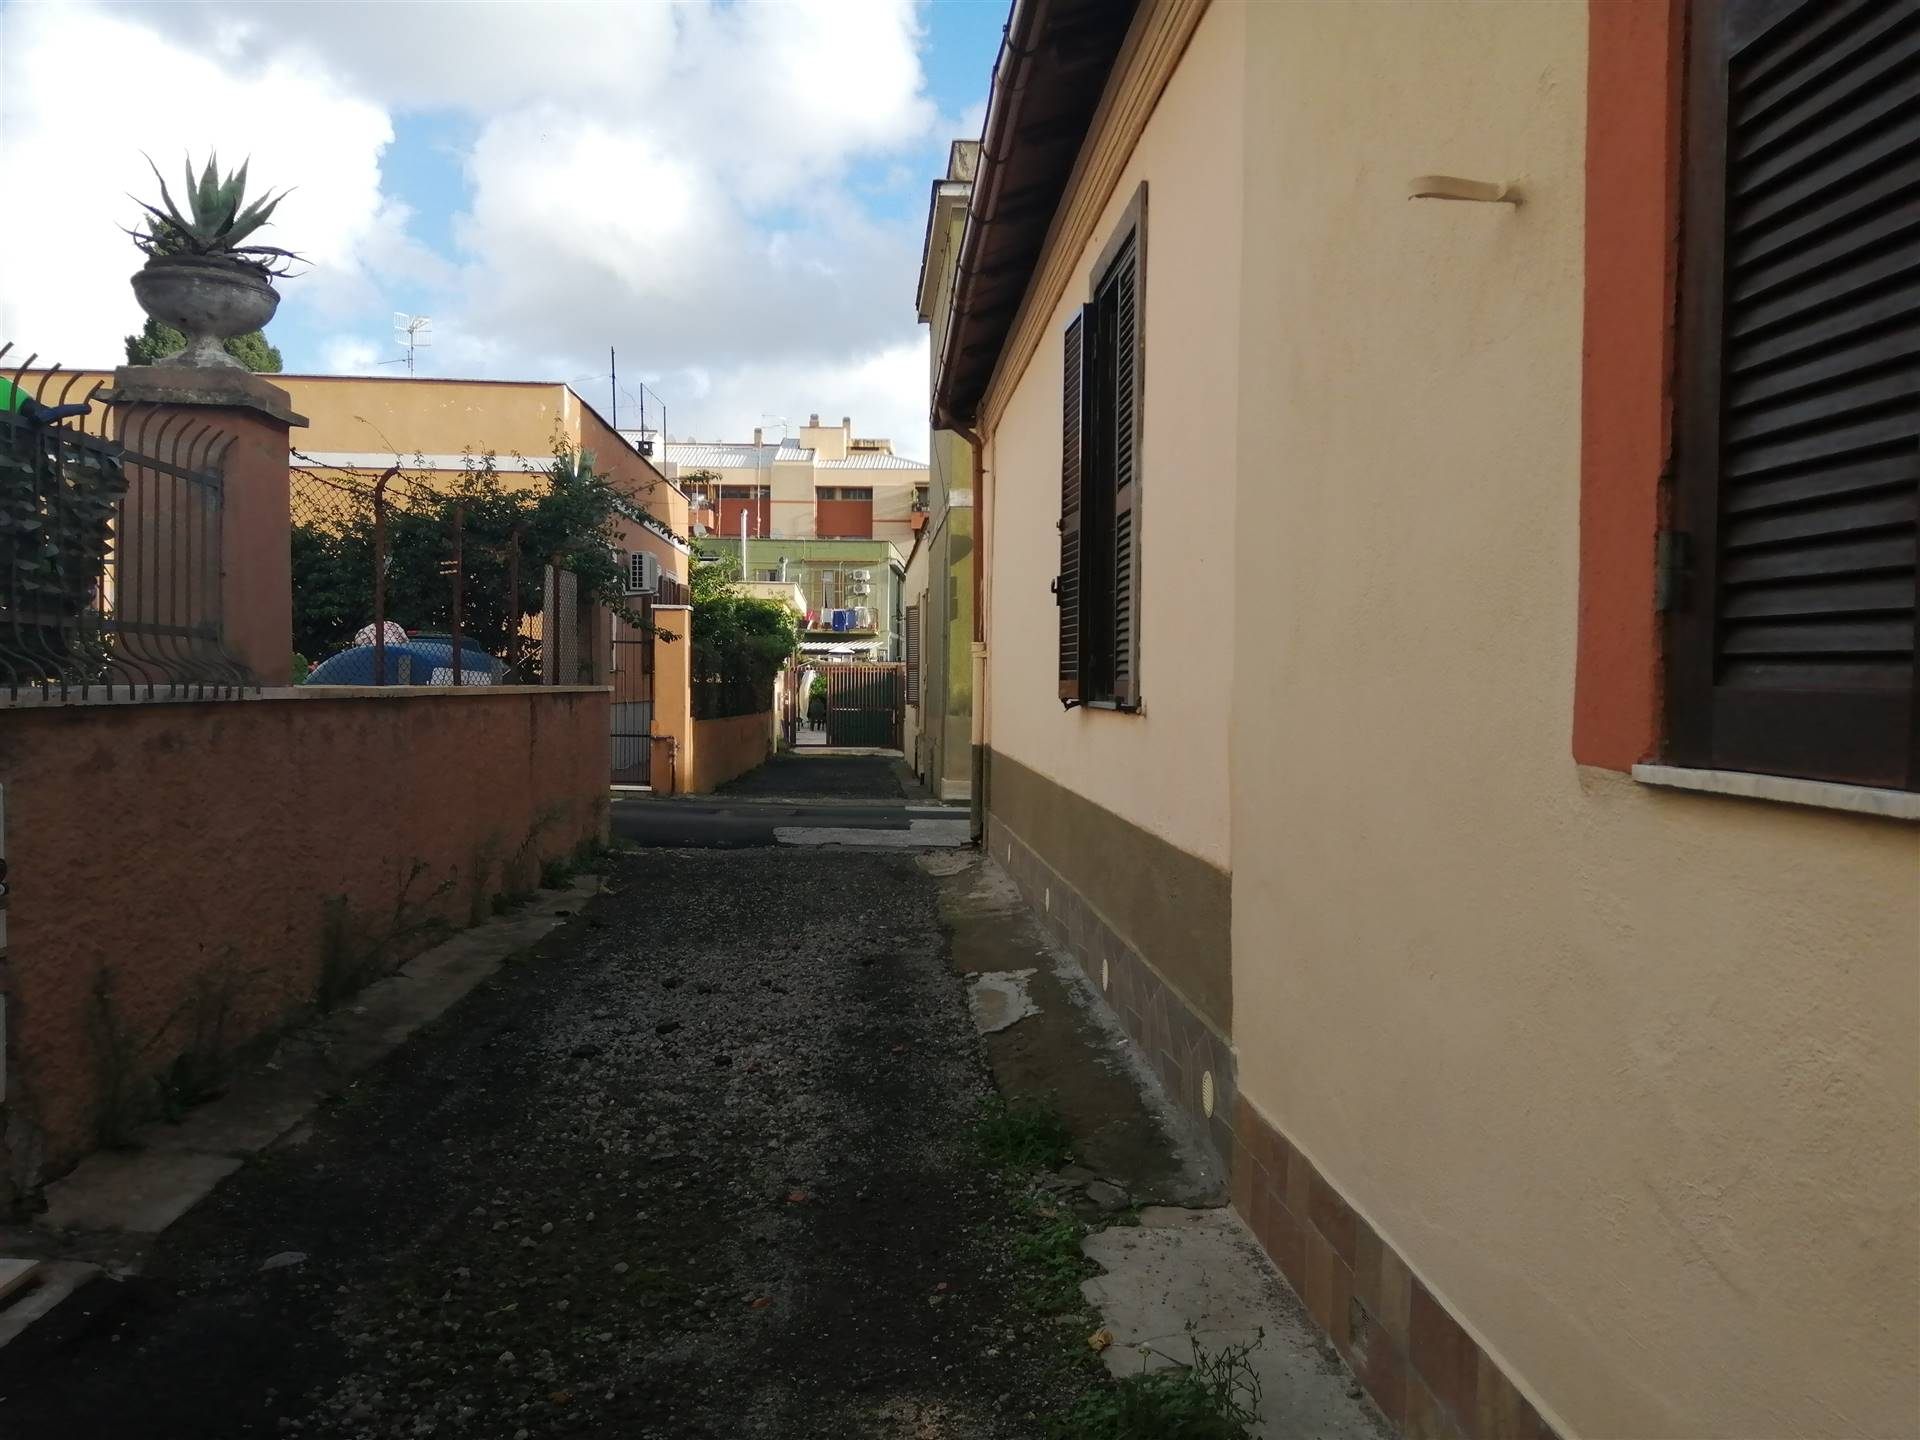 CENTRO, CIVITAVECCHIA, Apartment for sale of 55 Sq. mt., Good condition, Heating Individual heating system, Energetic class: G, placed at Ground, composed by: 2 Rooms, Kitchenette, , 1 Bedroom, 1